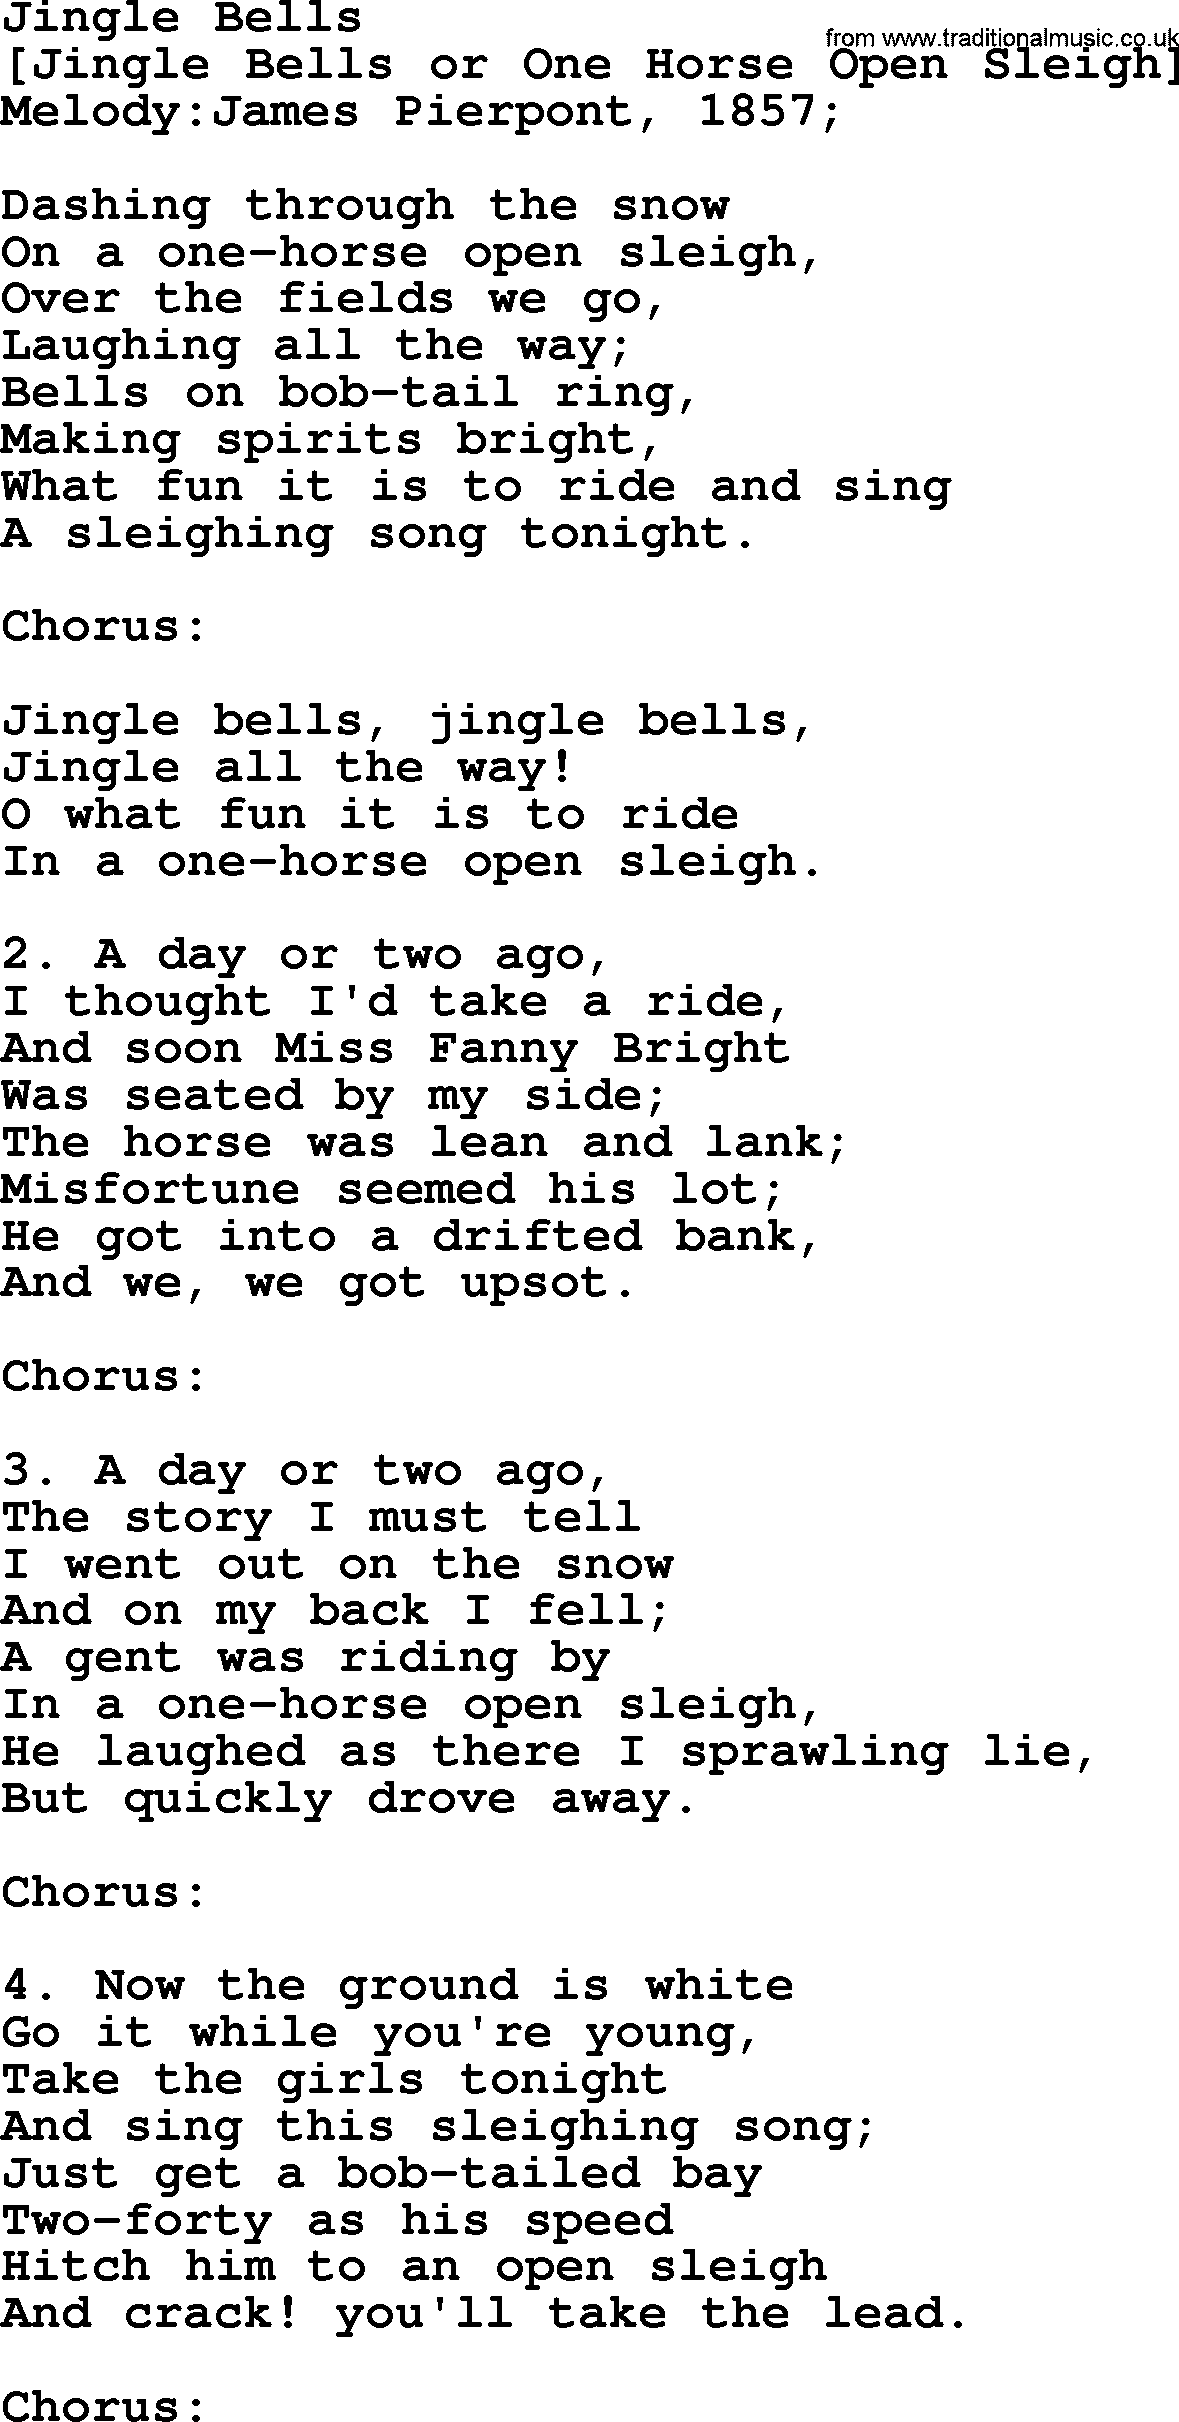 jingle bell lyrics